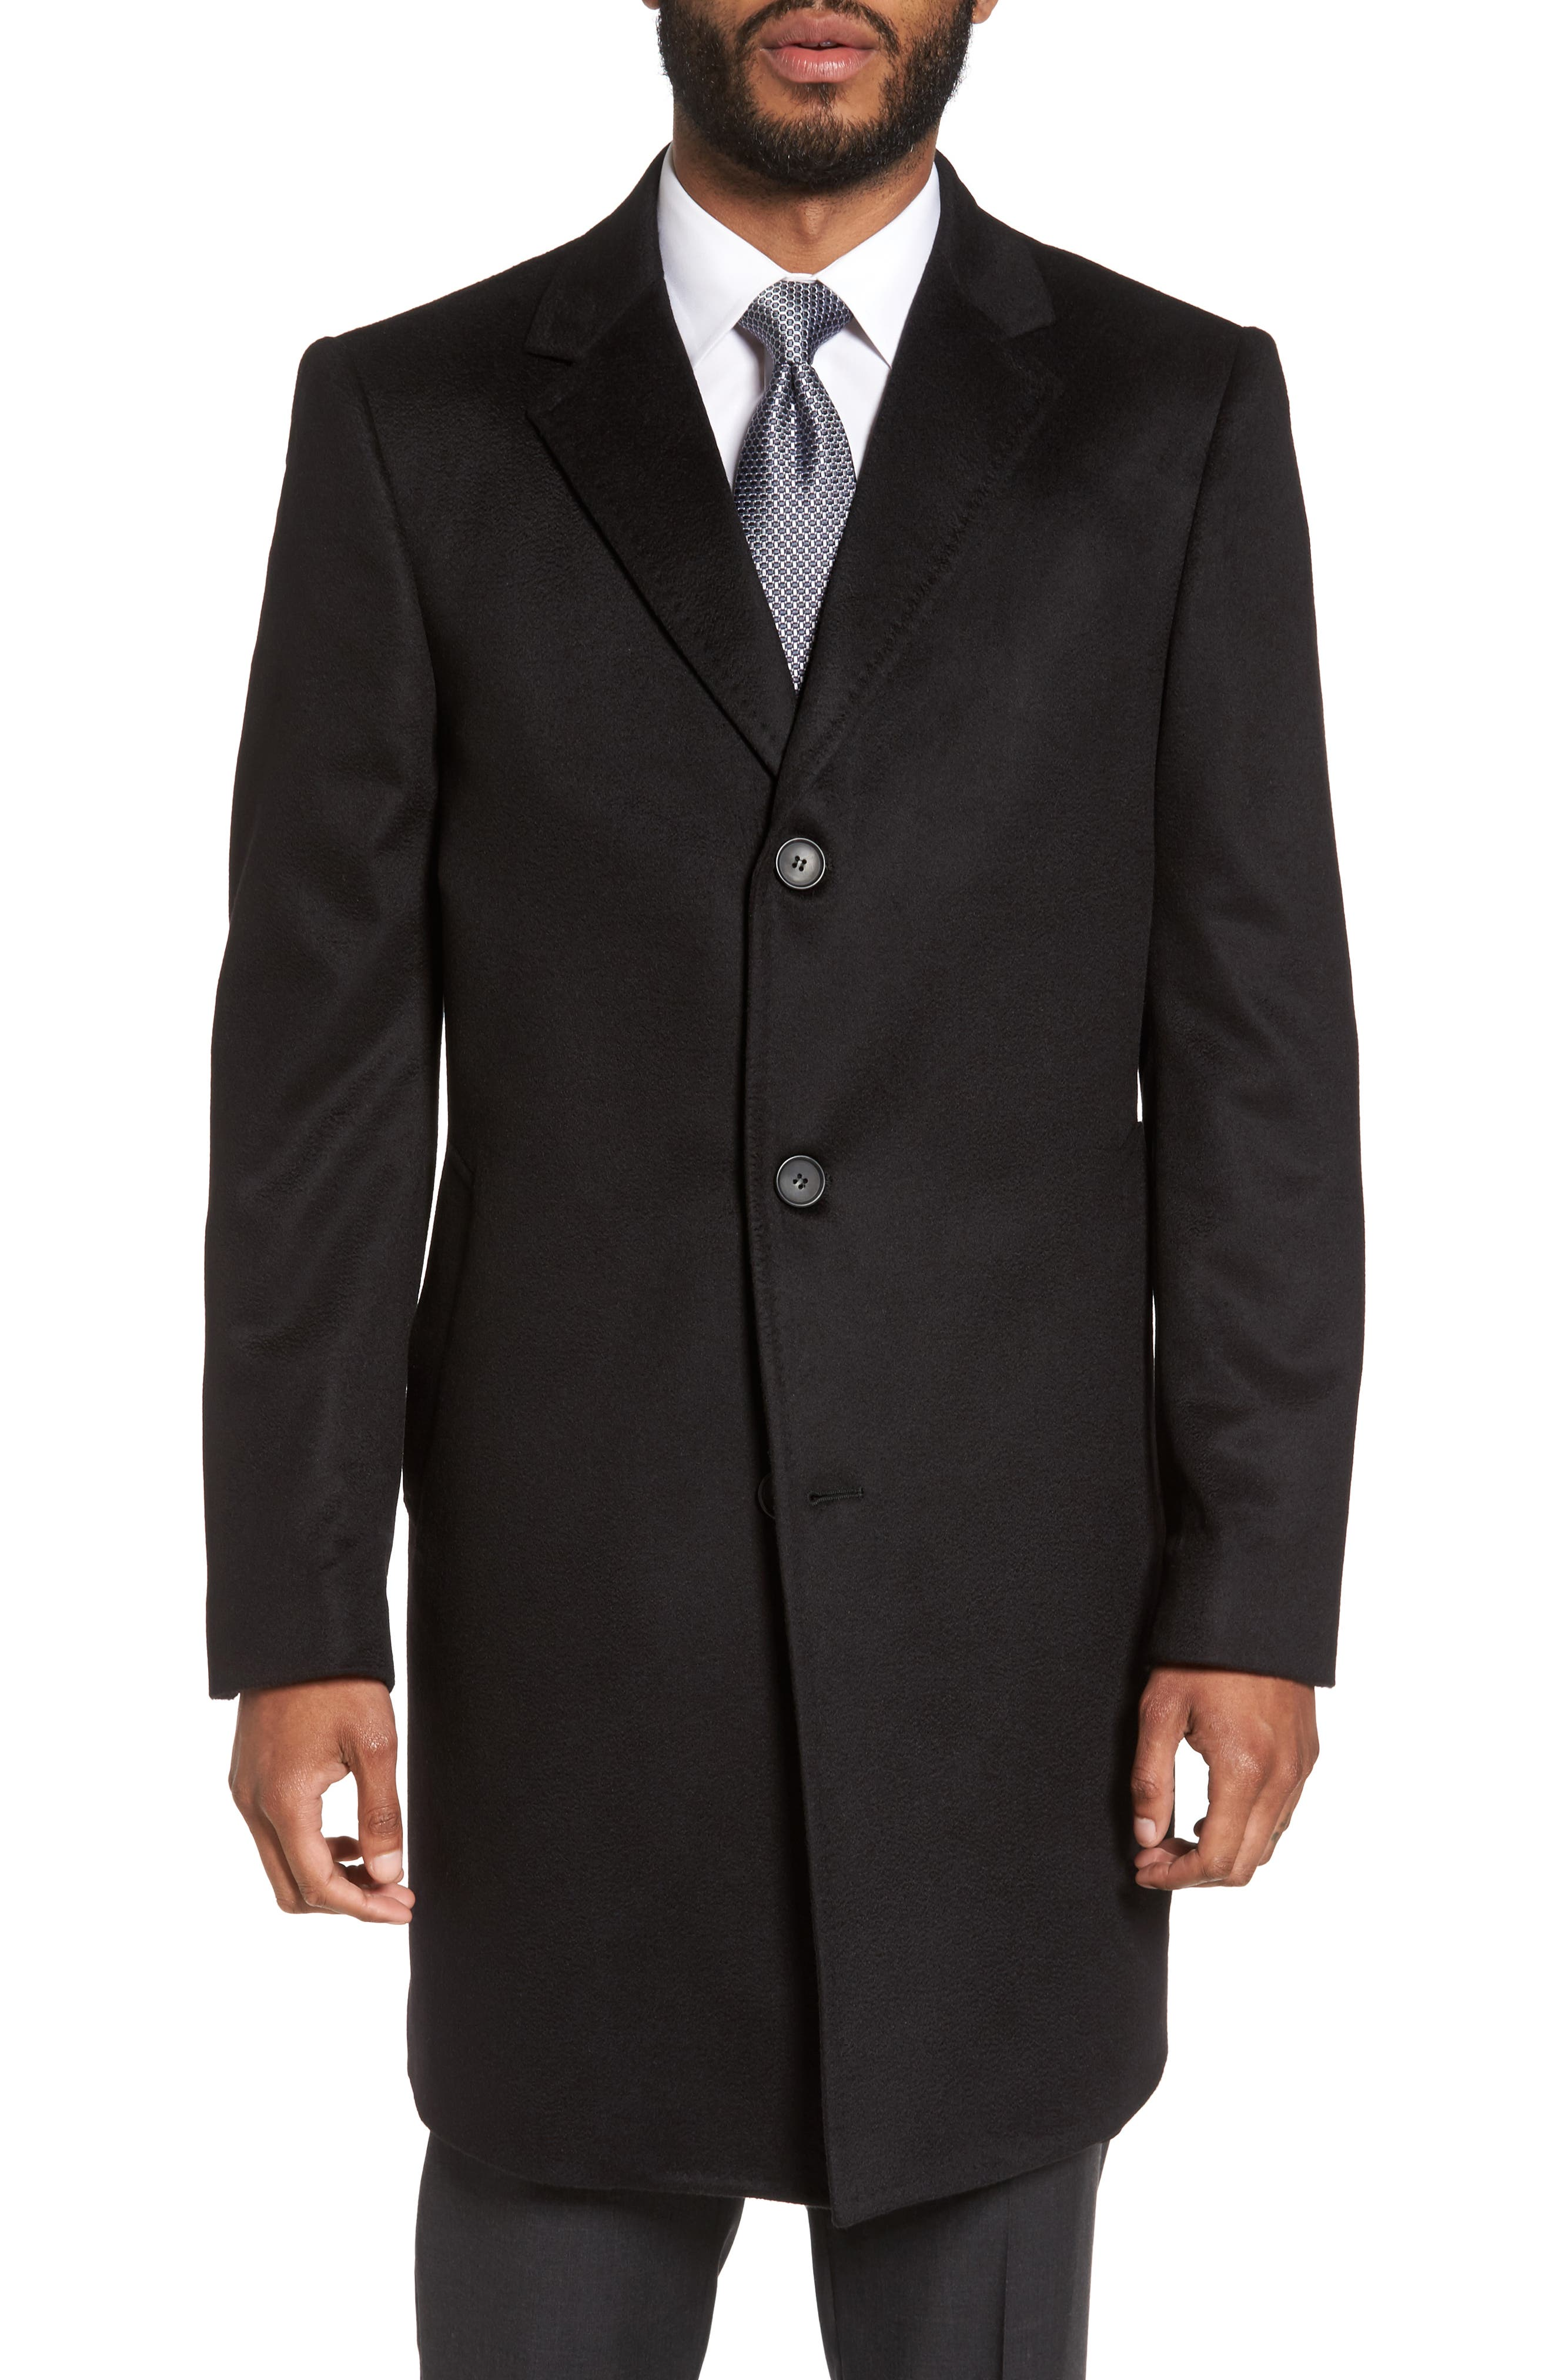 Carter Classic Fit Cashmere Overcoat,                             Main thumbnail 1, color,                             001